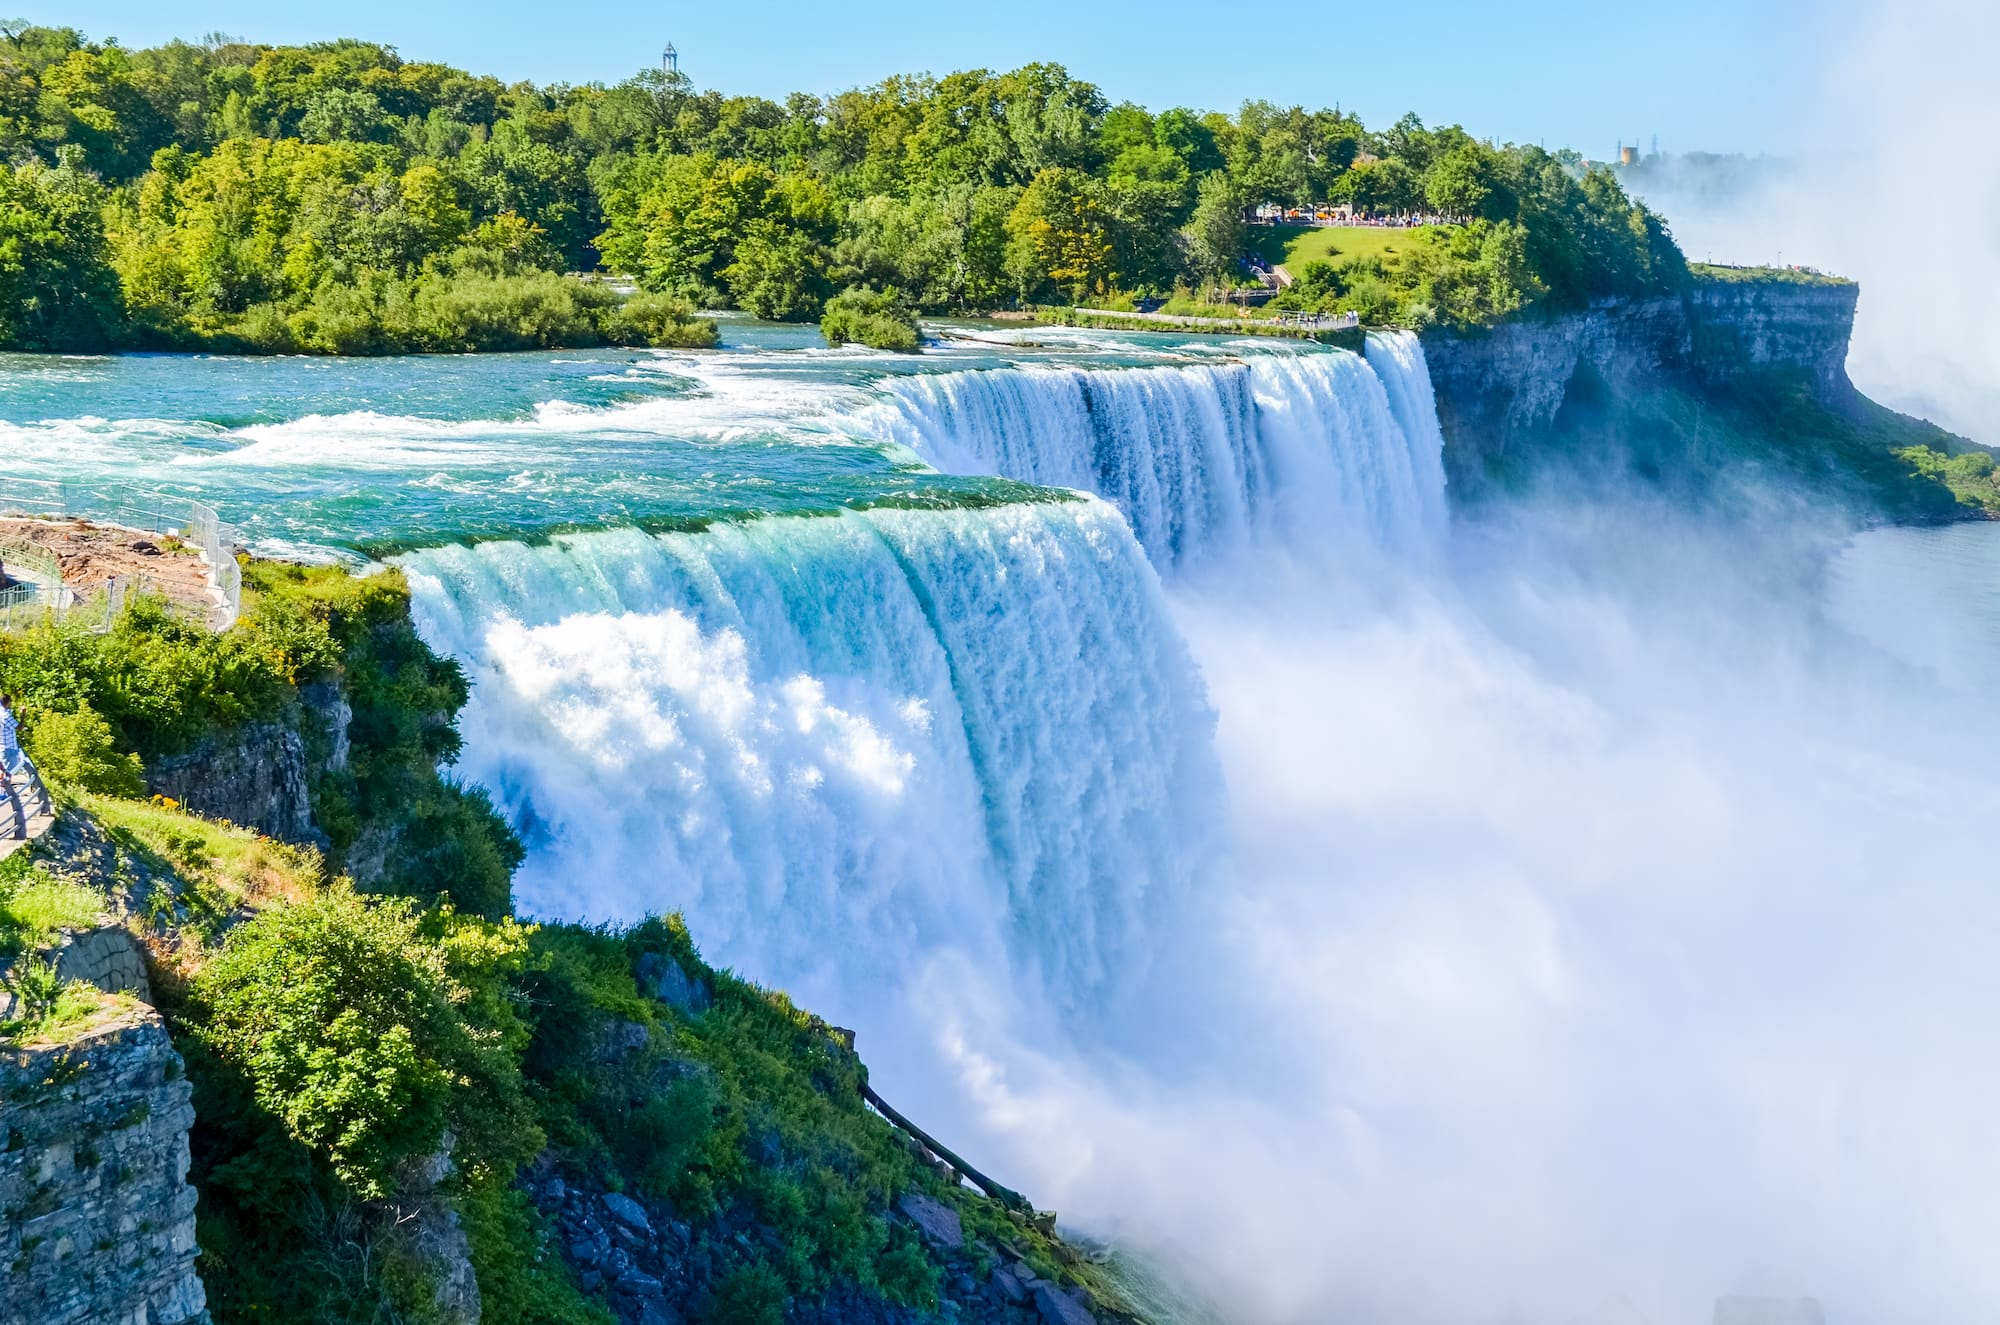 Niagara Falls with green trees in background